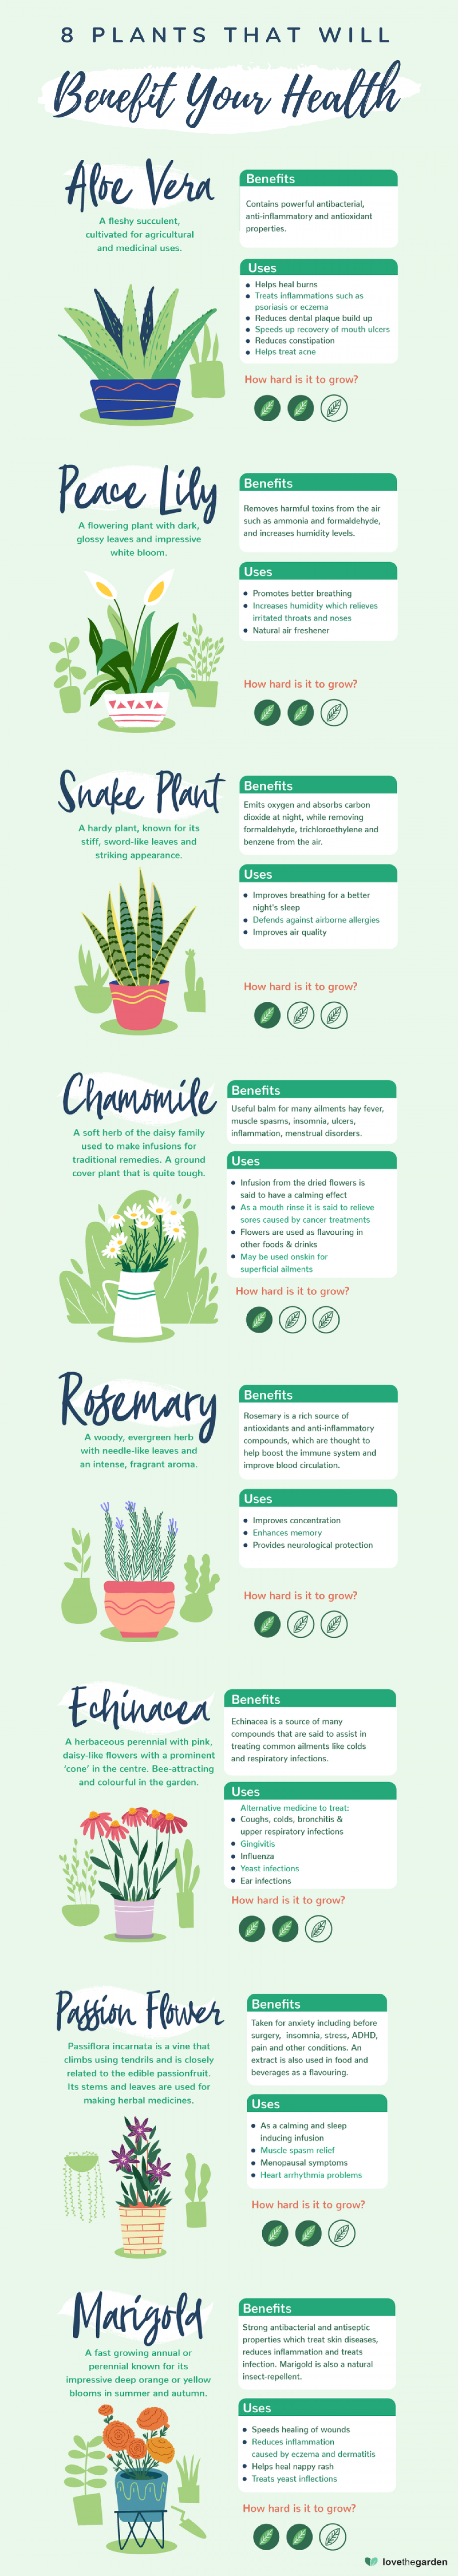 8 Australian Houseplants That Will Benefit Your Health Infographic